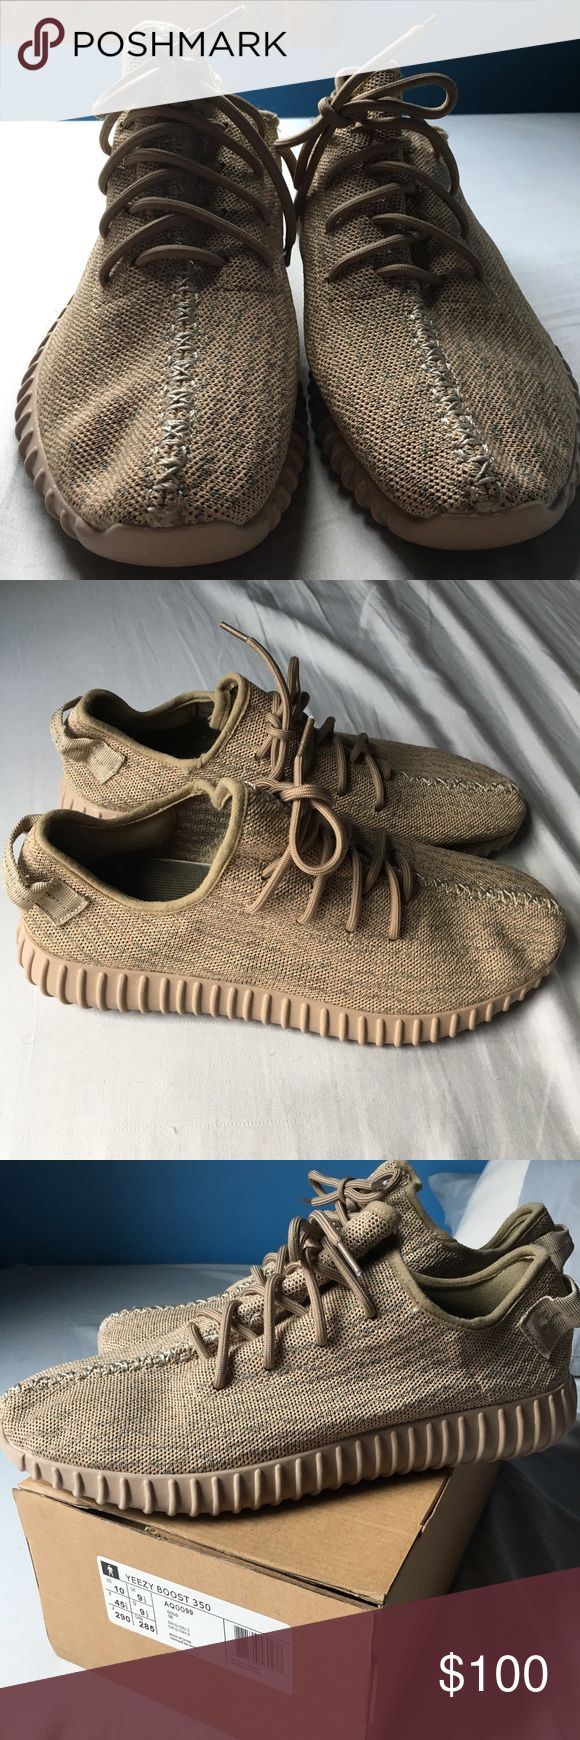 Yeezy Boost 350 Oxford Tan Best pair of flawless UNAUTHENTIC Yeezy Oxford Tans. So close to original. New with box. Size 10. Price is firm. Yeezy Shoes Sneakers